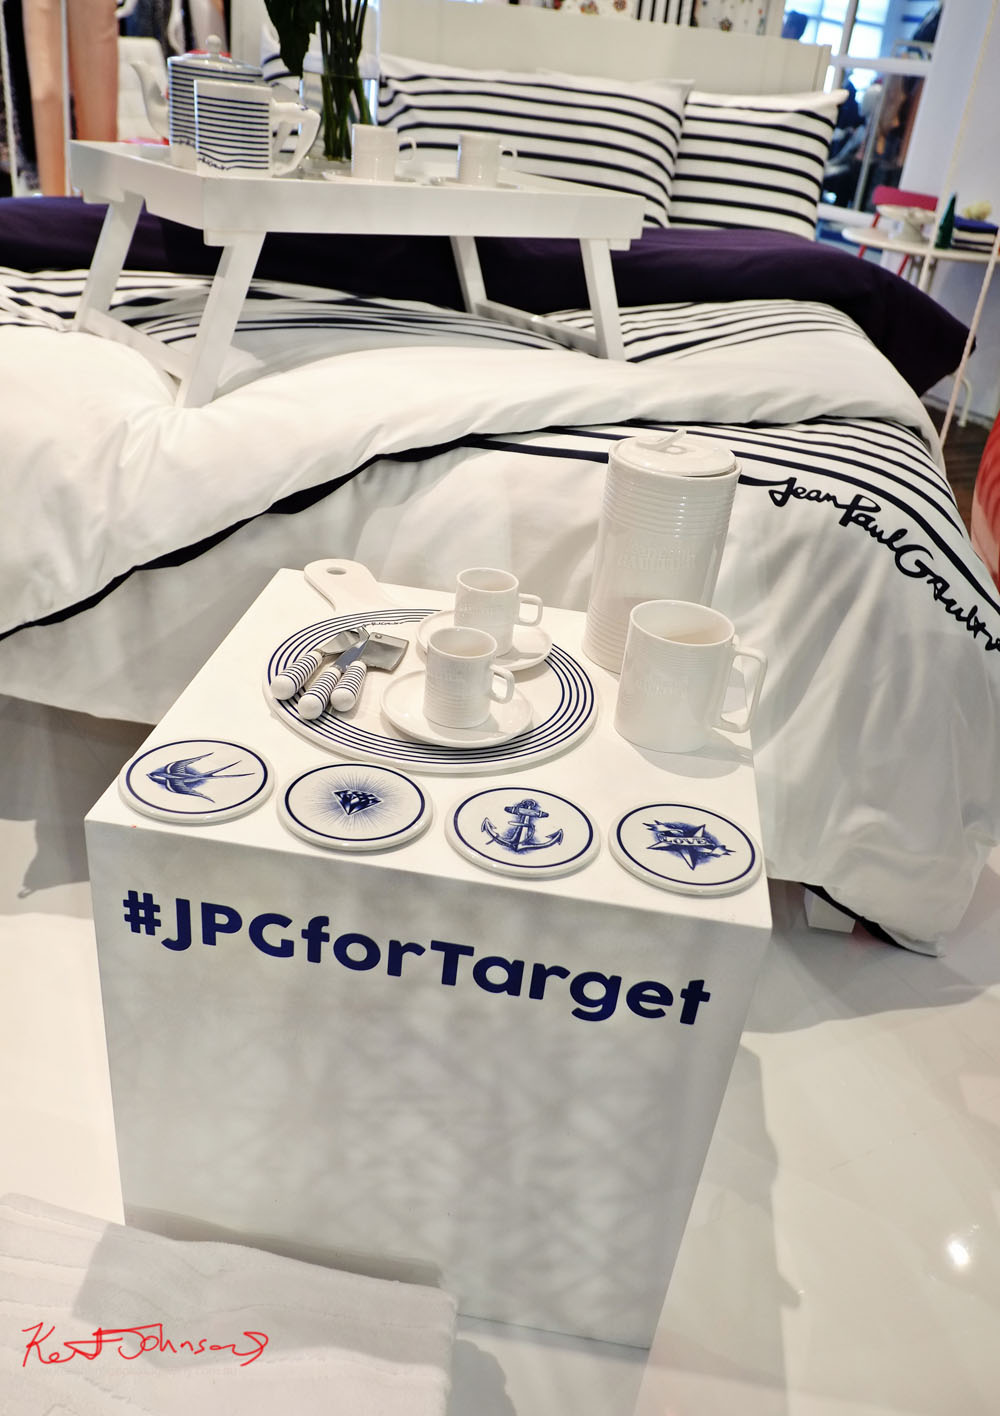 The Homeware range at the launch of #JPGforTarget, Unique Event Photography Sydney.